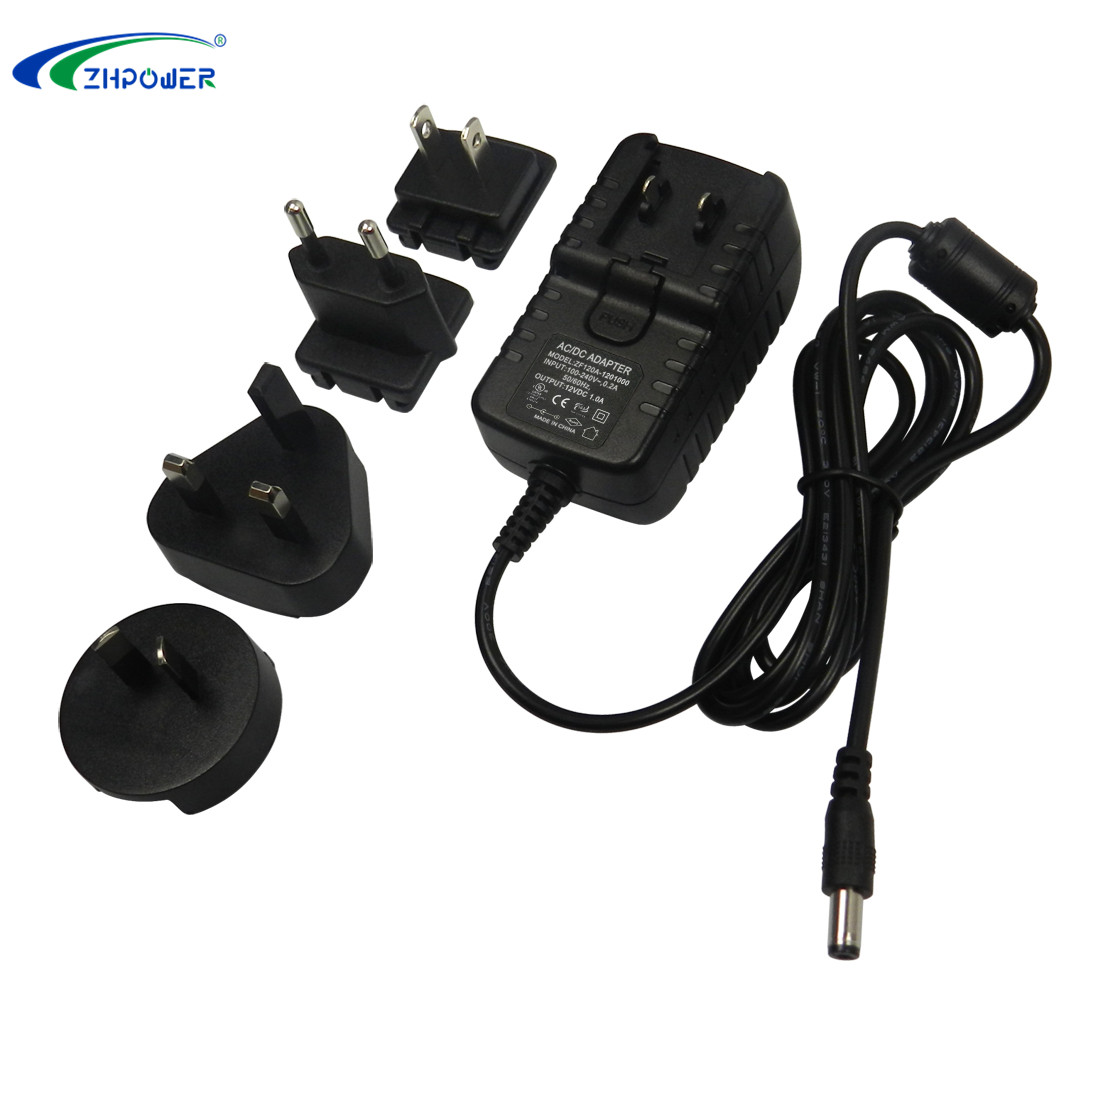 25v power adapter 500ma EU plug in adaptor 25 vdc 0.5a ac/dc adaptor for LED